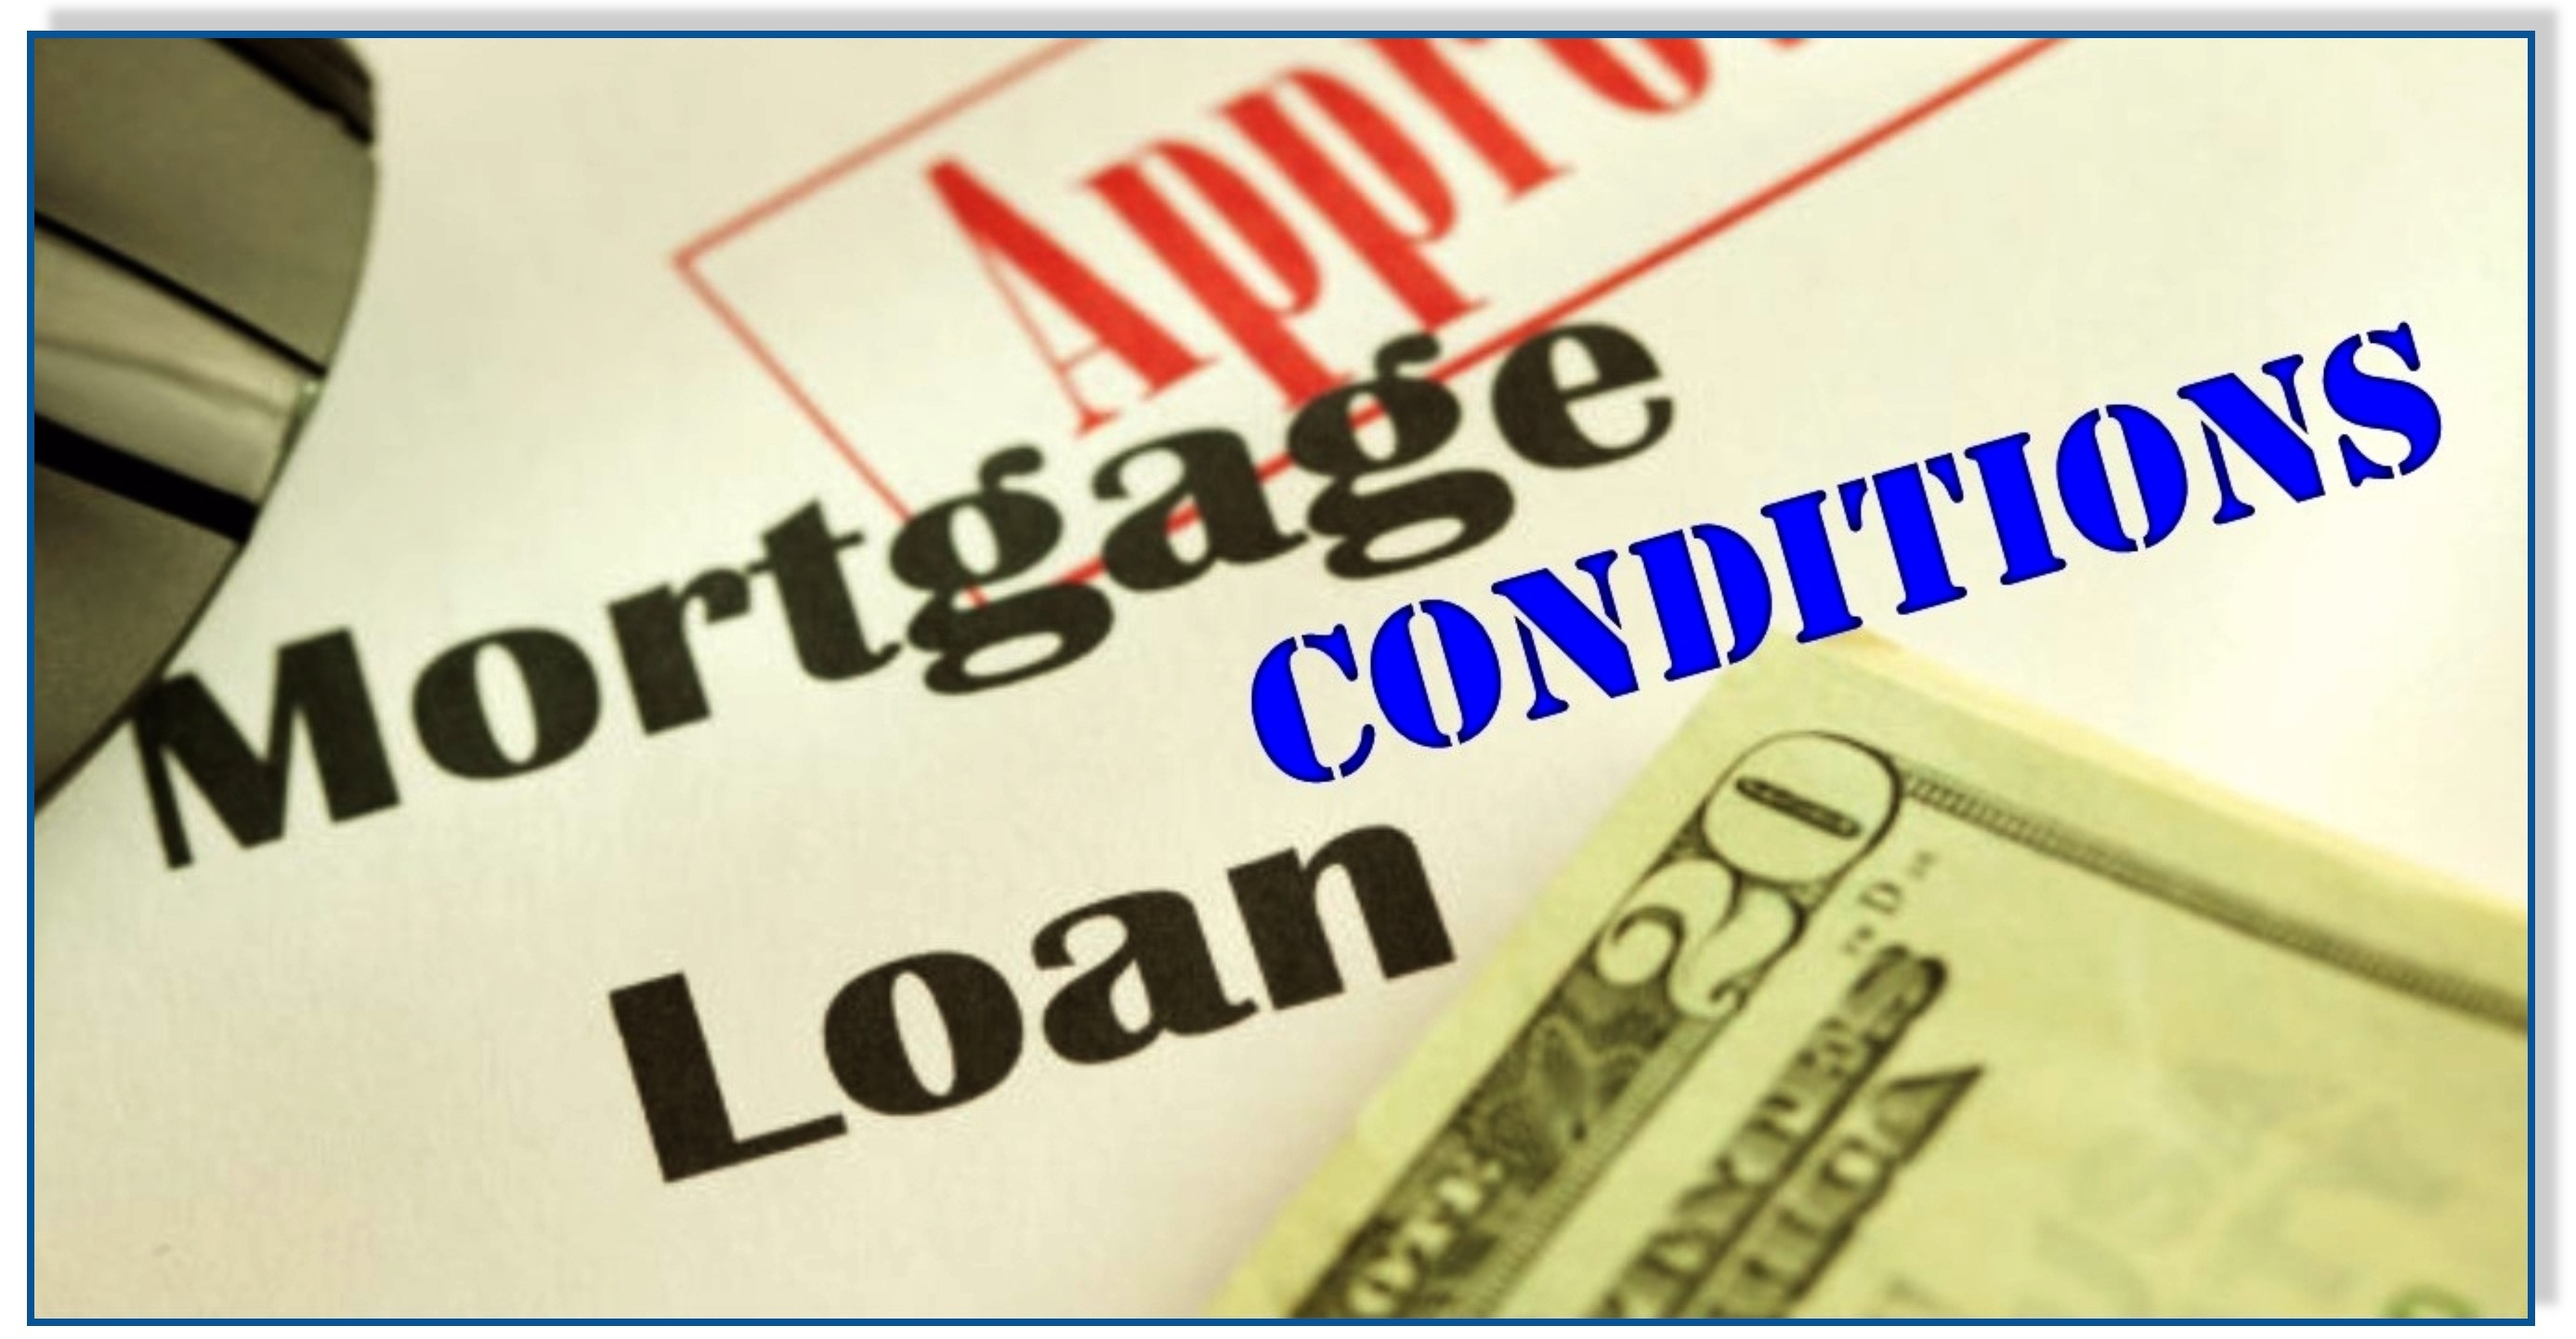 Loan Commitment - Mortgage Underwriter / Oscar Castillo